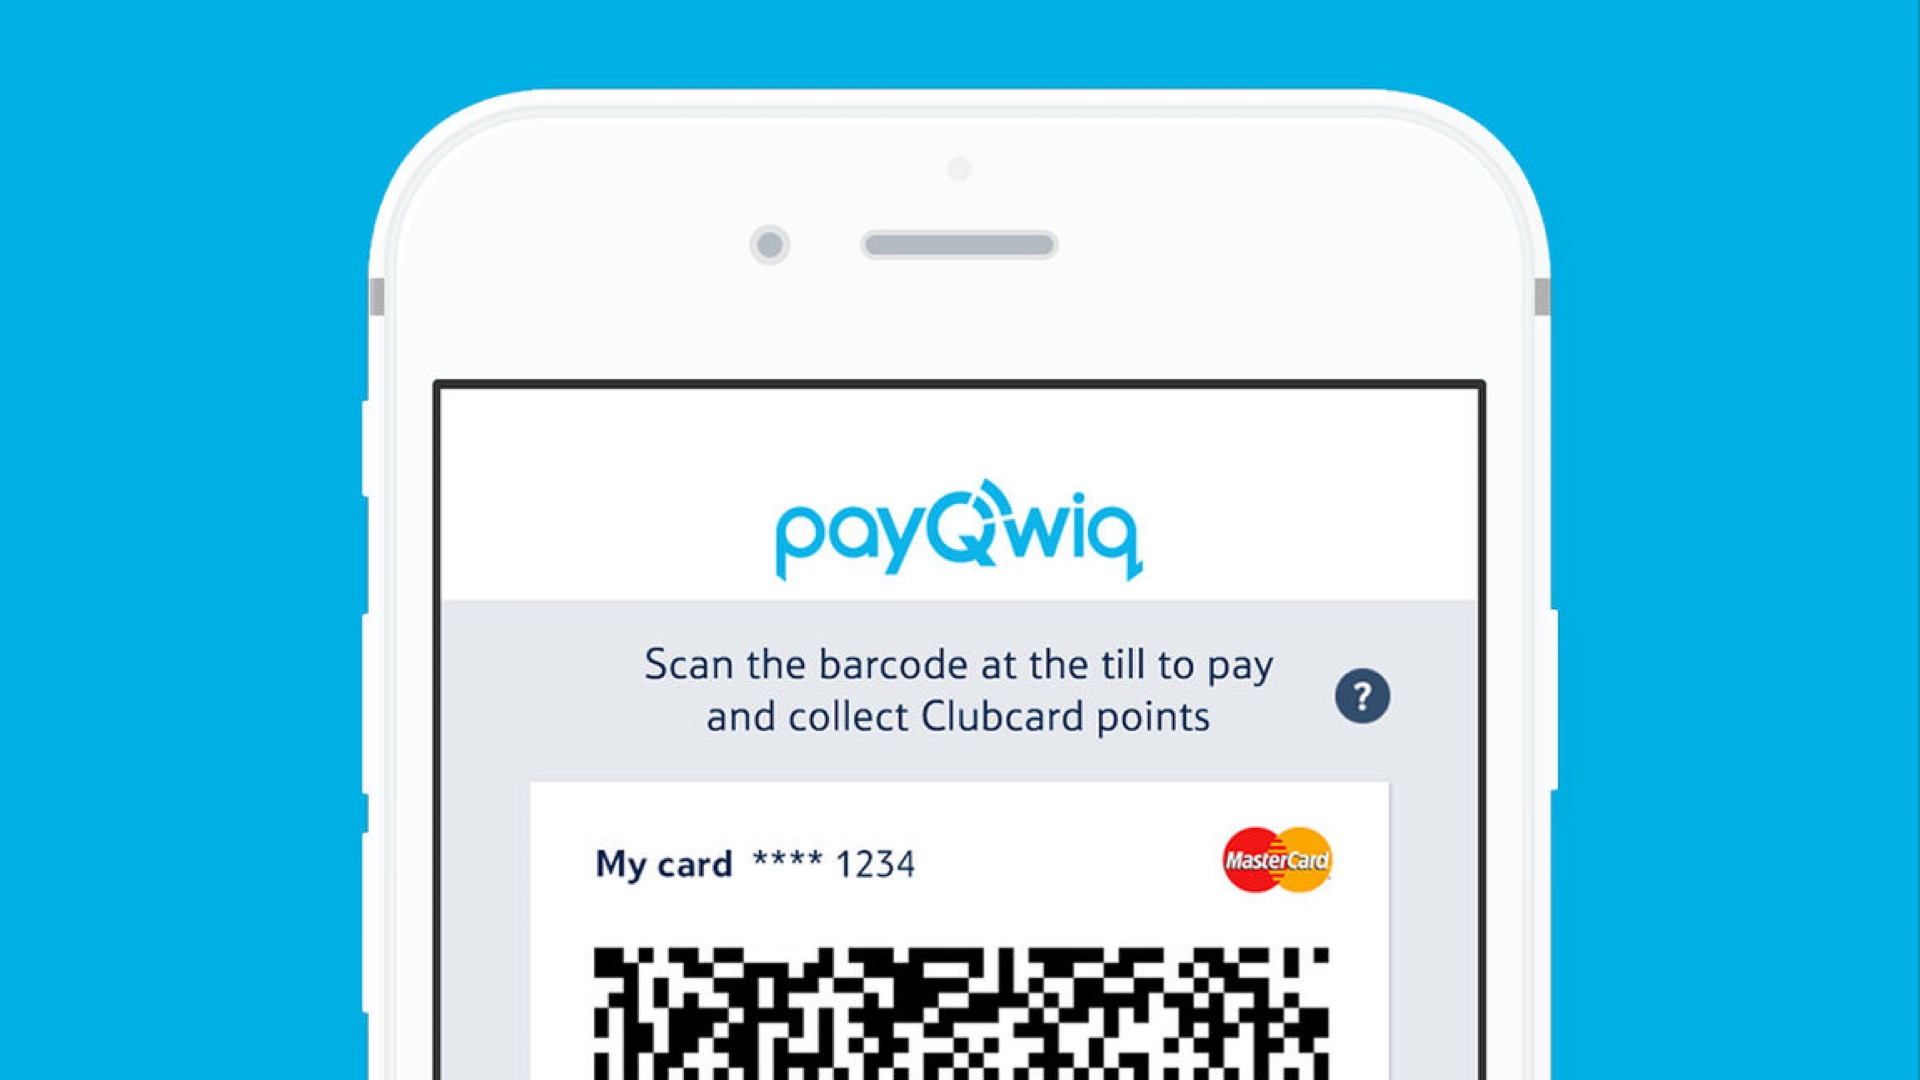 Photo of Tesco Offers 500 Reward Points for Use of PayQwiq App in UK